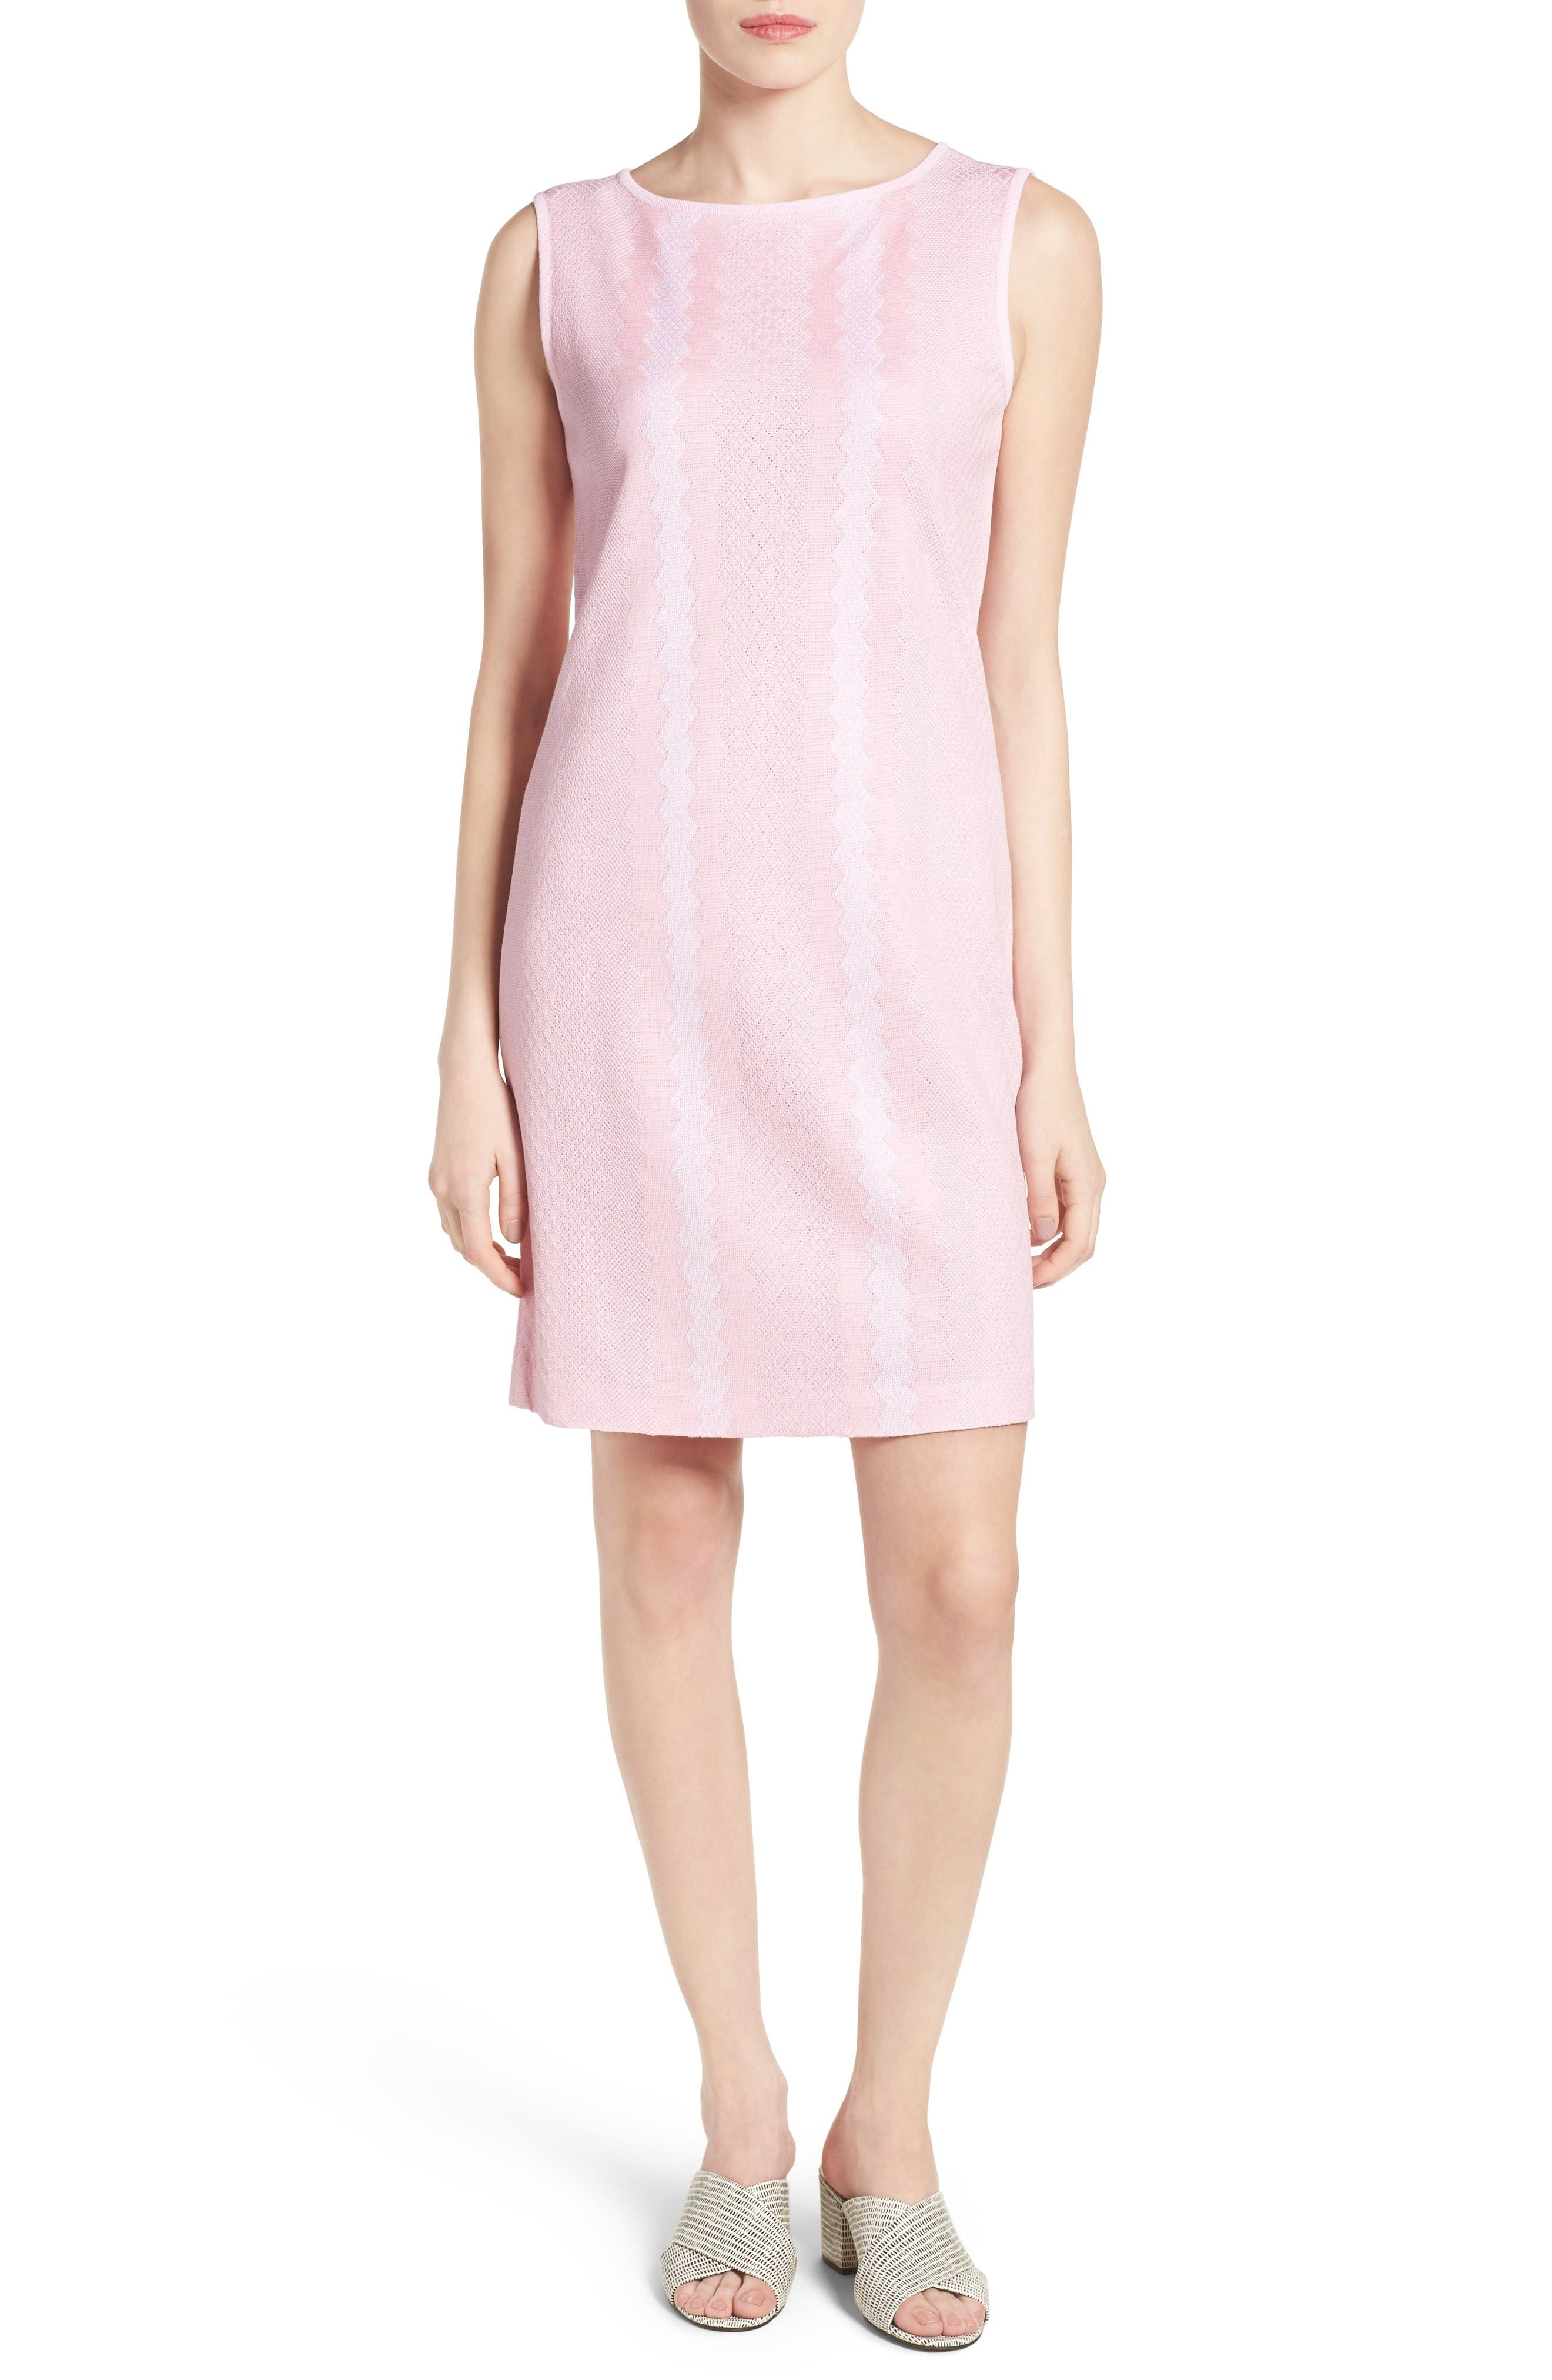 Sleeveless Knit Sheath Dress,                             Main thumbnail 1, color,                             Perfect Pink/ White